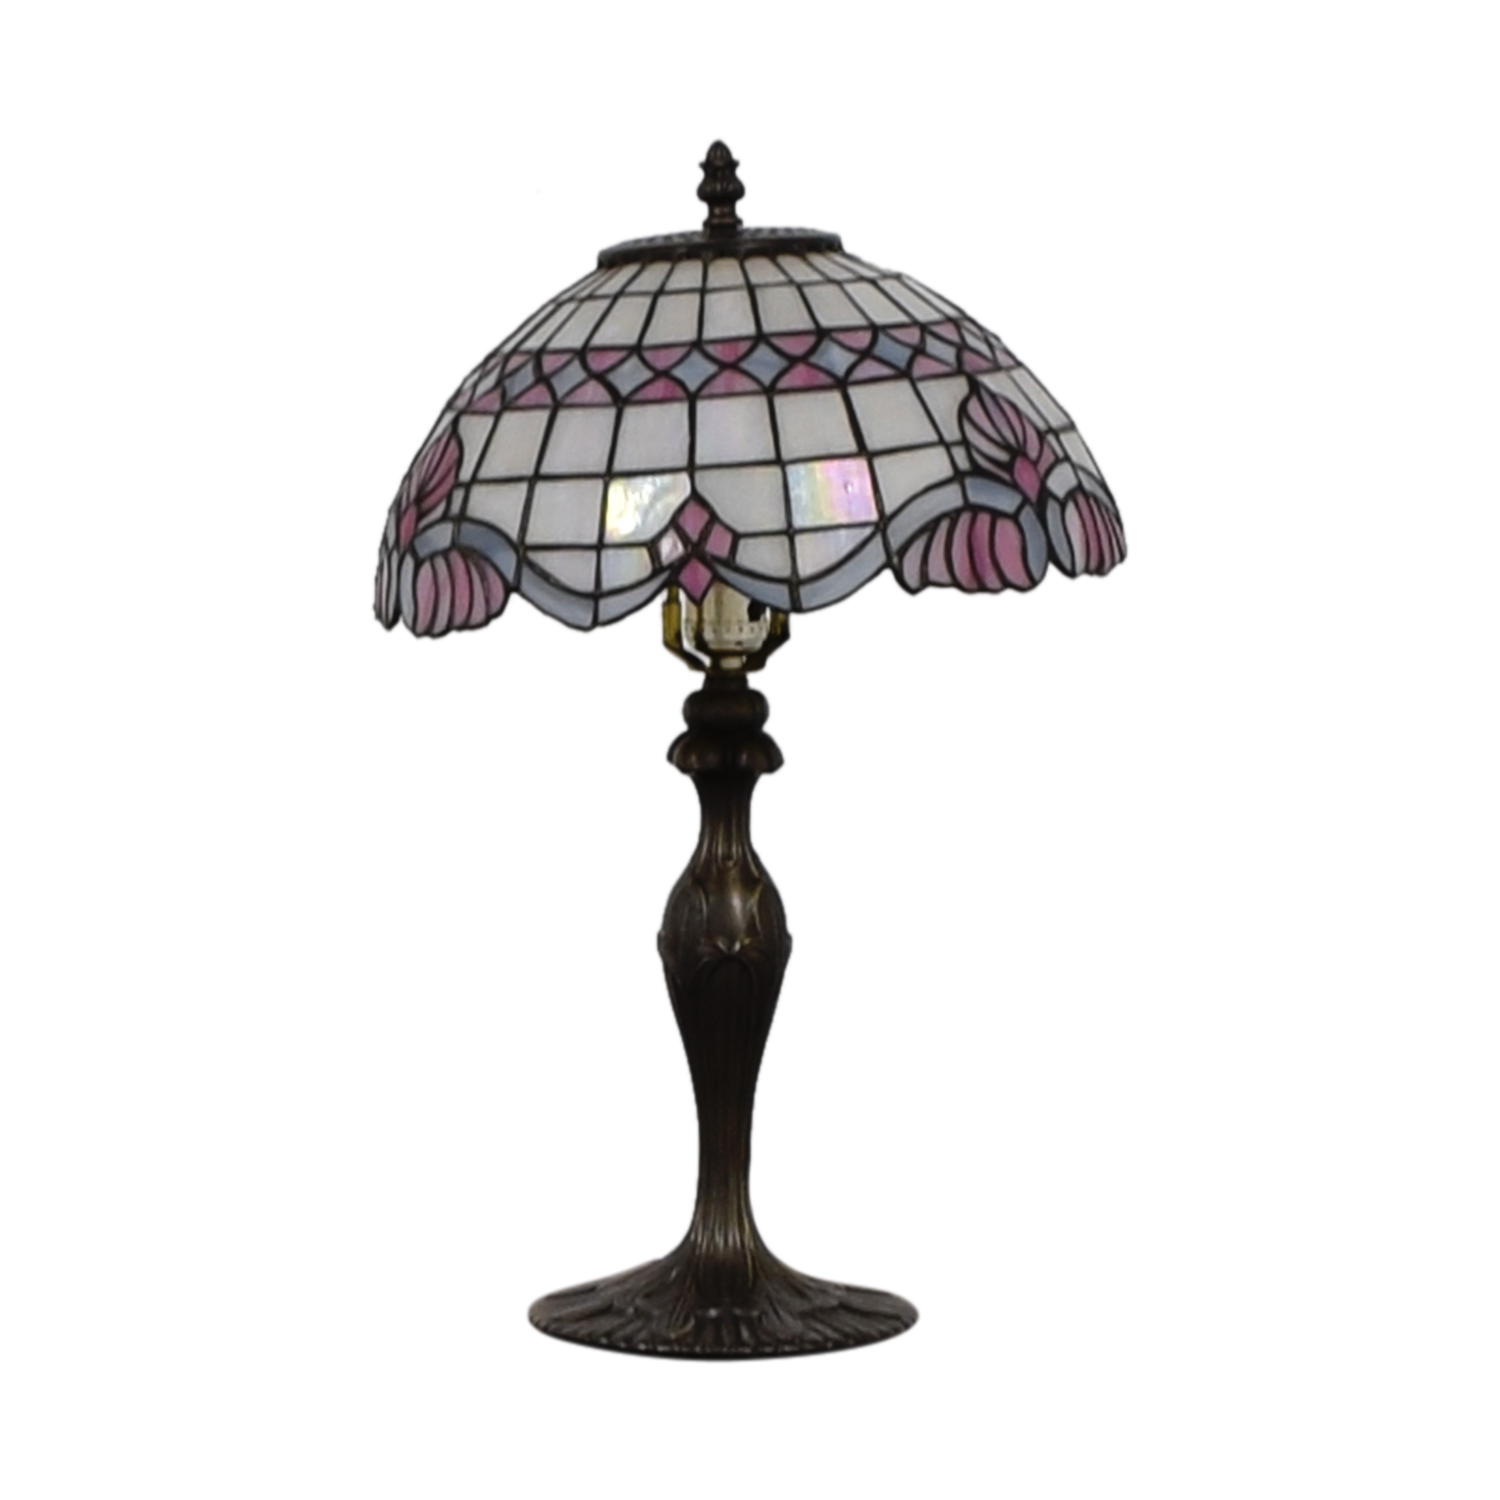 33 Off Tiffany Inspired Stained Glass Table Lamp Decor